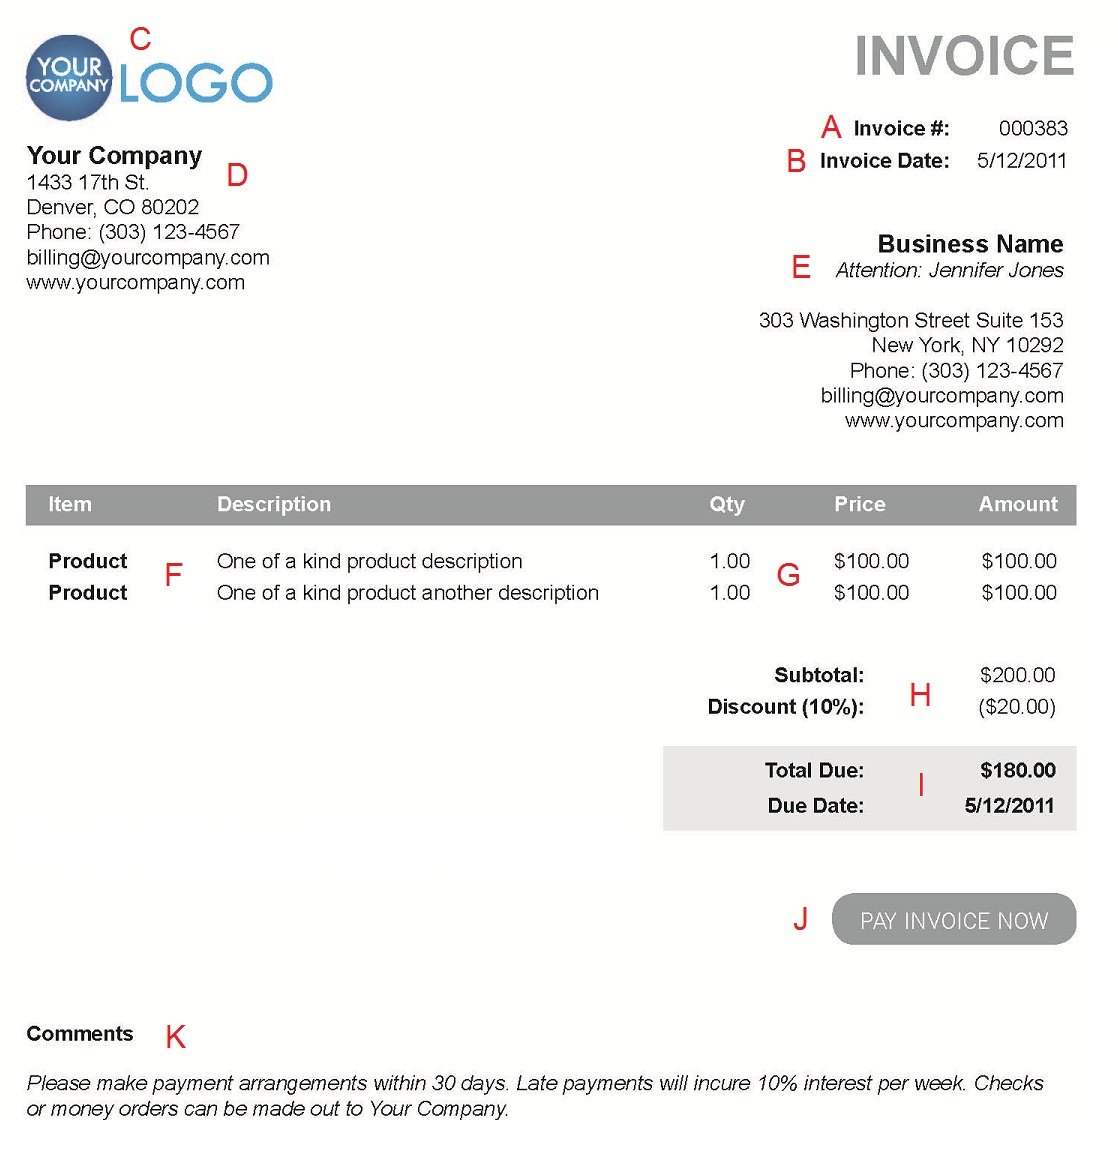 Opposenewapstandardsus  Marvellous The  Different Sections Of An Electronic Payment Invoice With Handsome A  With Beauteous Income Tax Receipts By Year Also Receipt Sample Doc In Addition Lic Premium Payment Receipt Online And Printable Receipts For Rent As Well As Best Price On Neat Receipt Scanner Additionally Toshiba Receipt Printer From Paysimplecom With Opposenewapstandardsus  Handsome The  Different Sections Of An Electronic Payment Invoice With Beauteous A  And Marvellous Income Tax Receipts By Year Also Receipt Sample Doc In Addition Lic Premium Payment Receipt Online From Paysimplecom